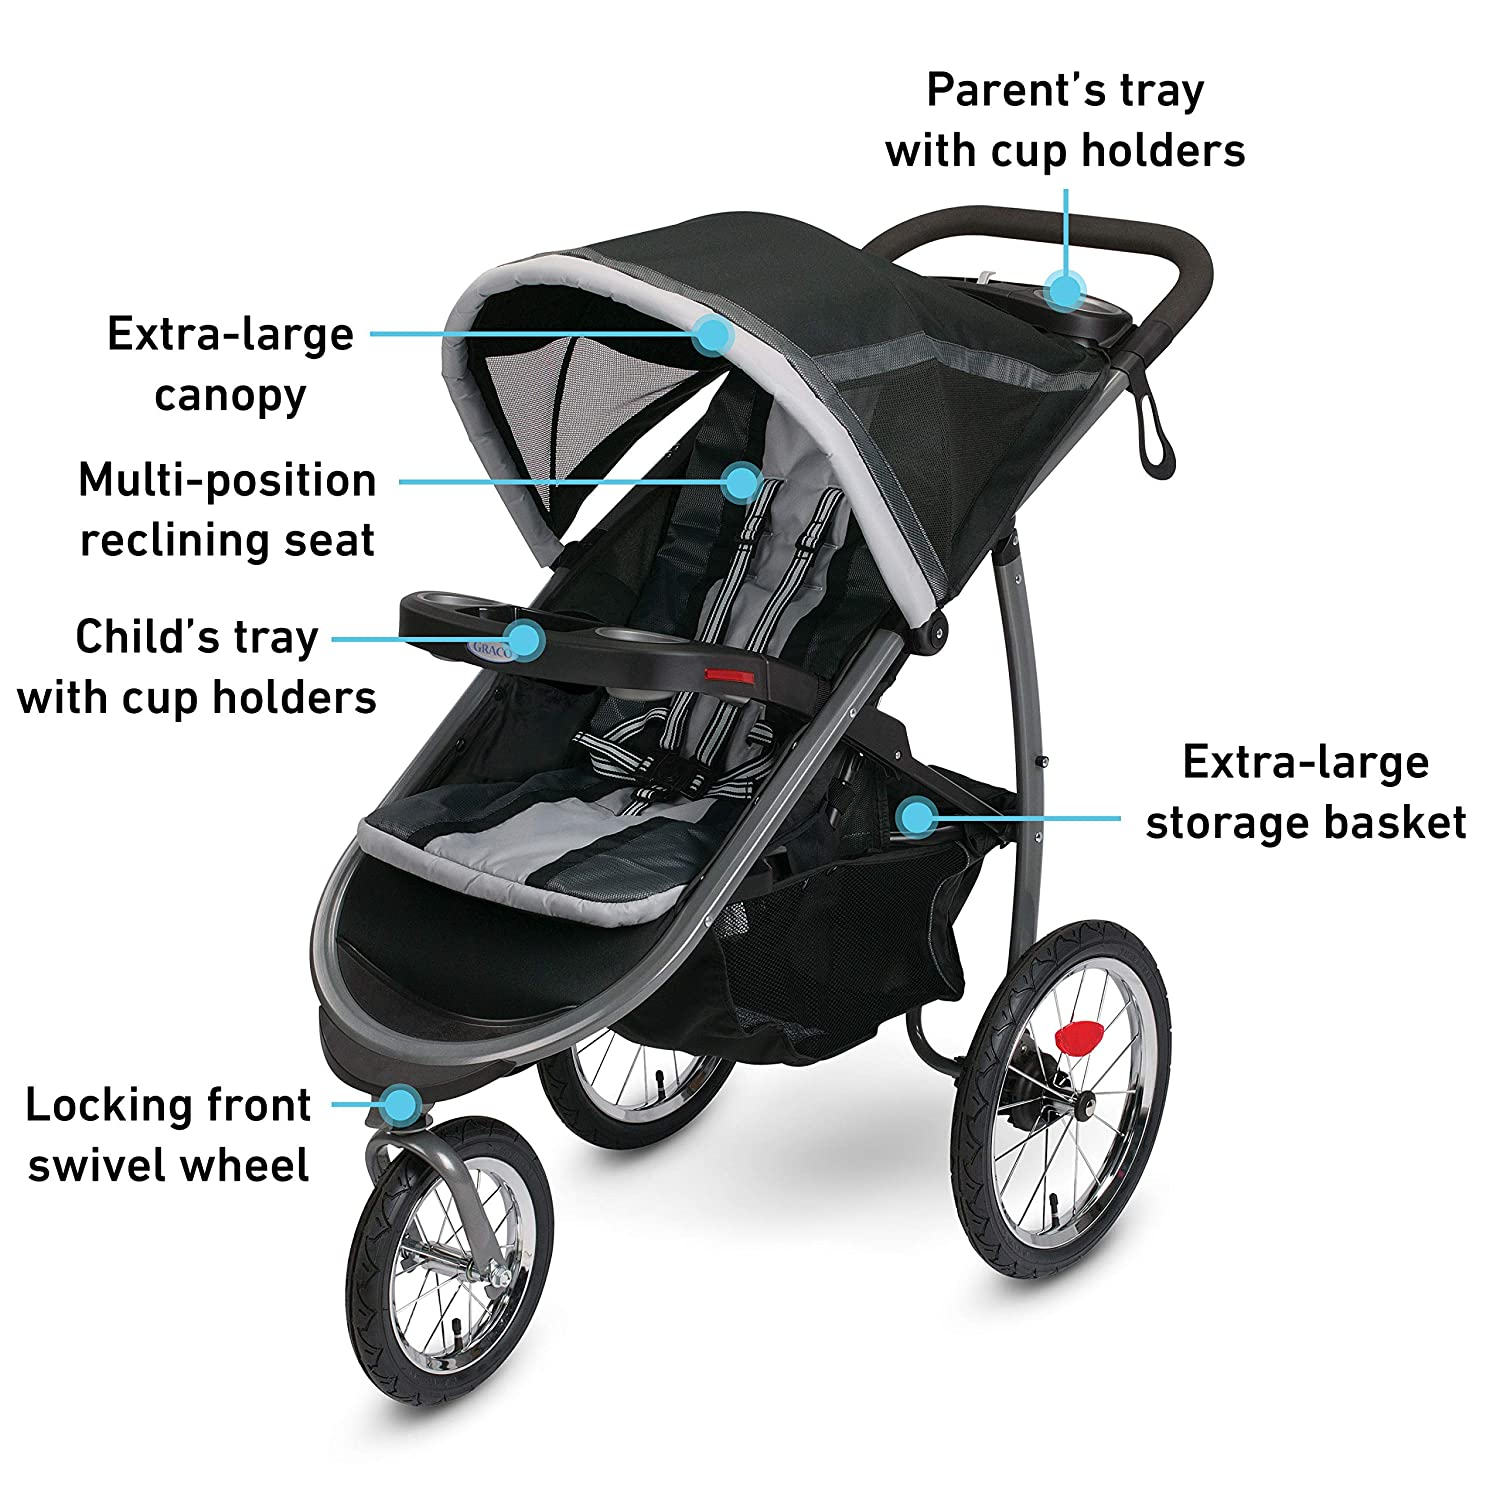 Best Baby Car Seat and Stroller in 2021 – Reviews and Buying Guide